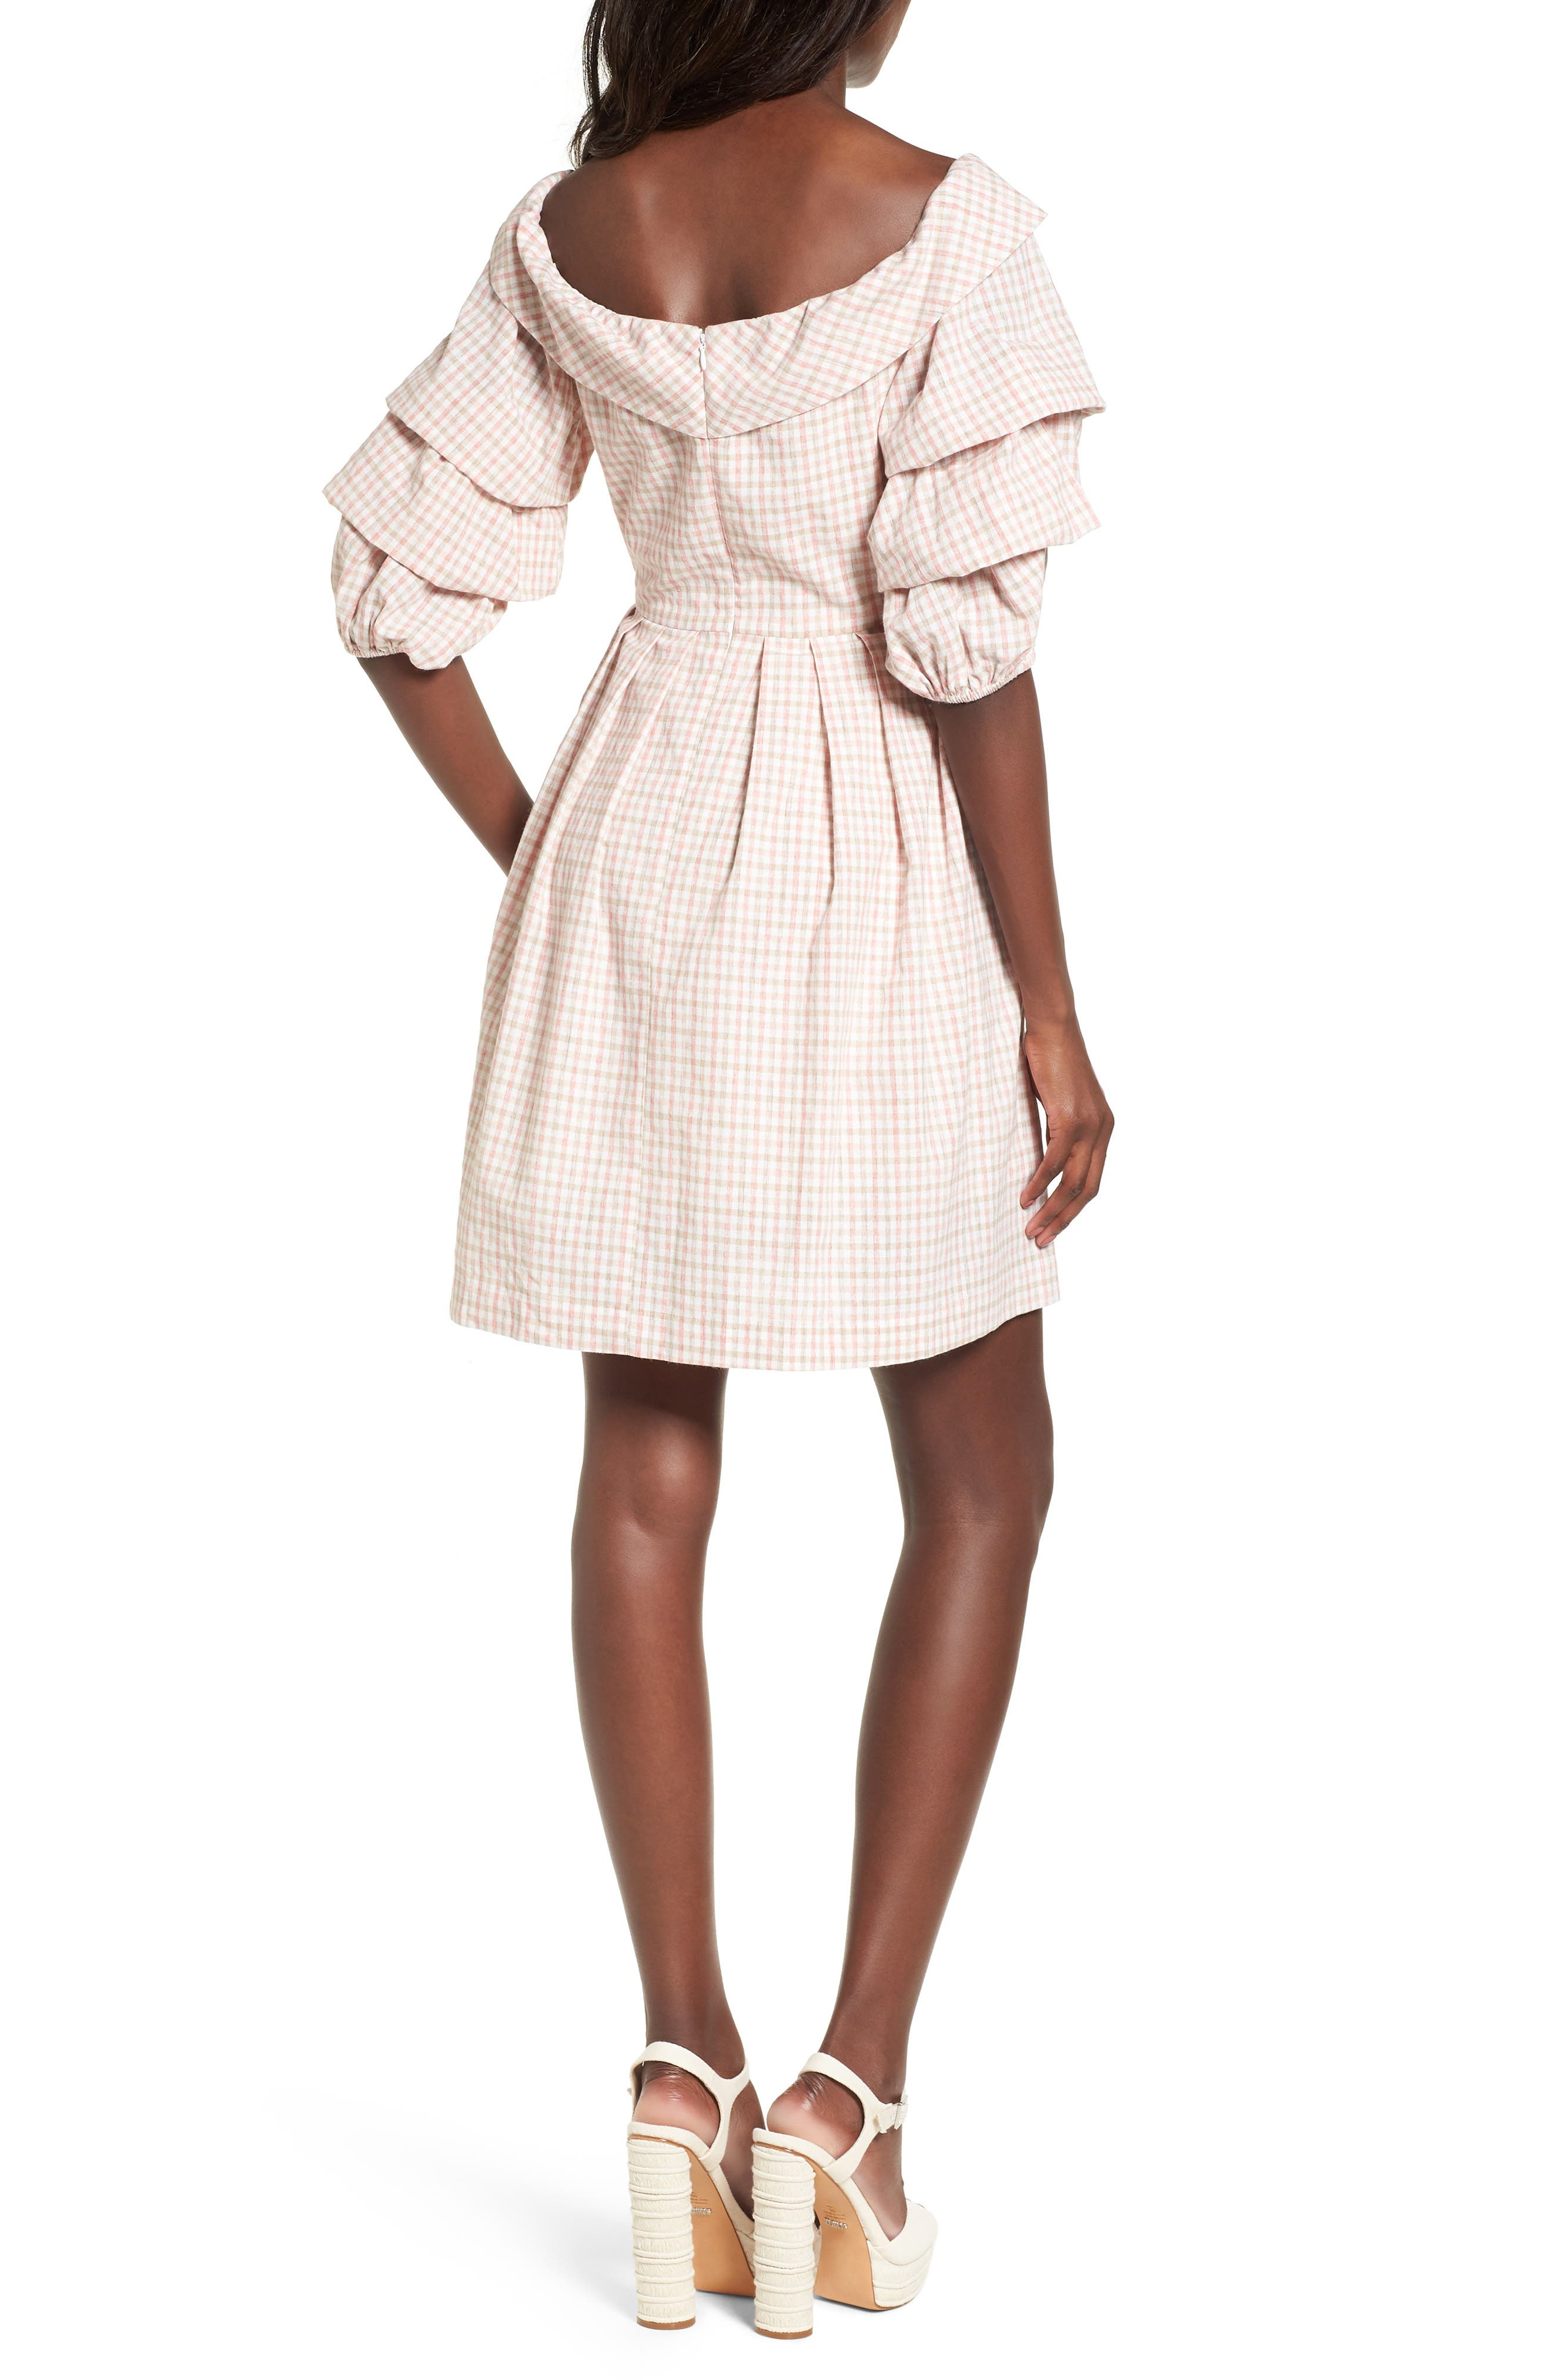 Chriselle x J.O.A. Tiered Sleeve Minidress,                             Alternate thumbnail 2, color,                             650